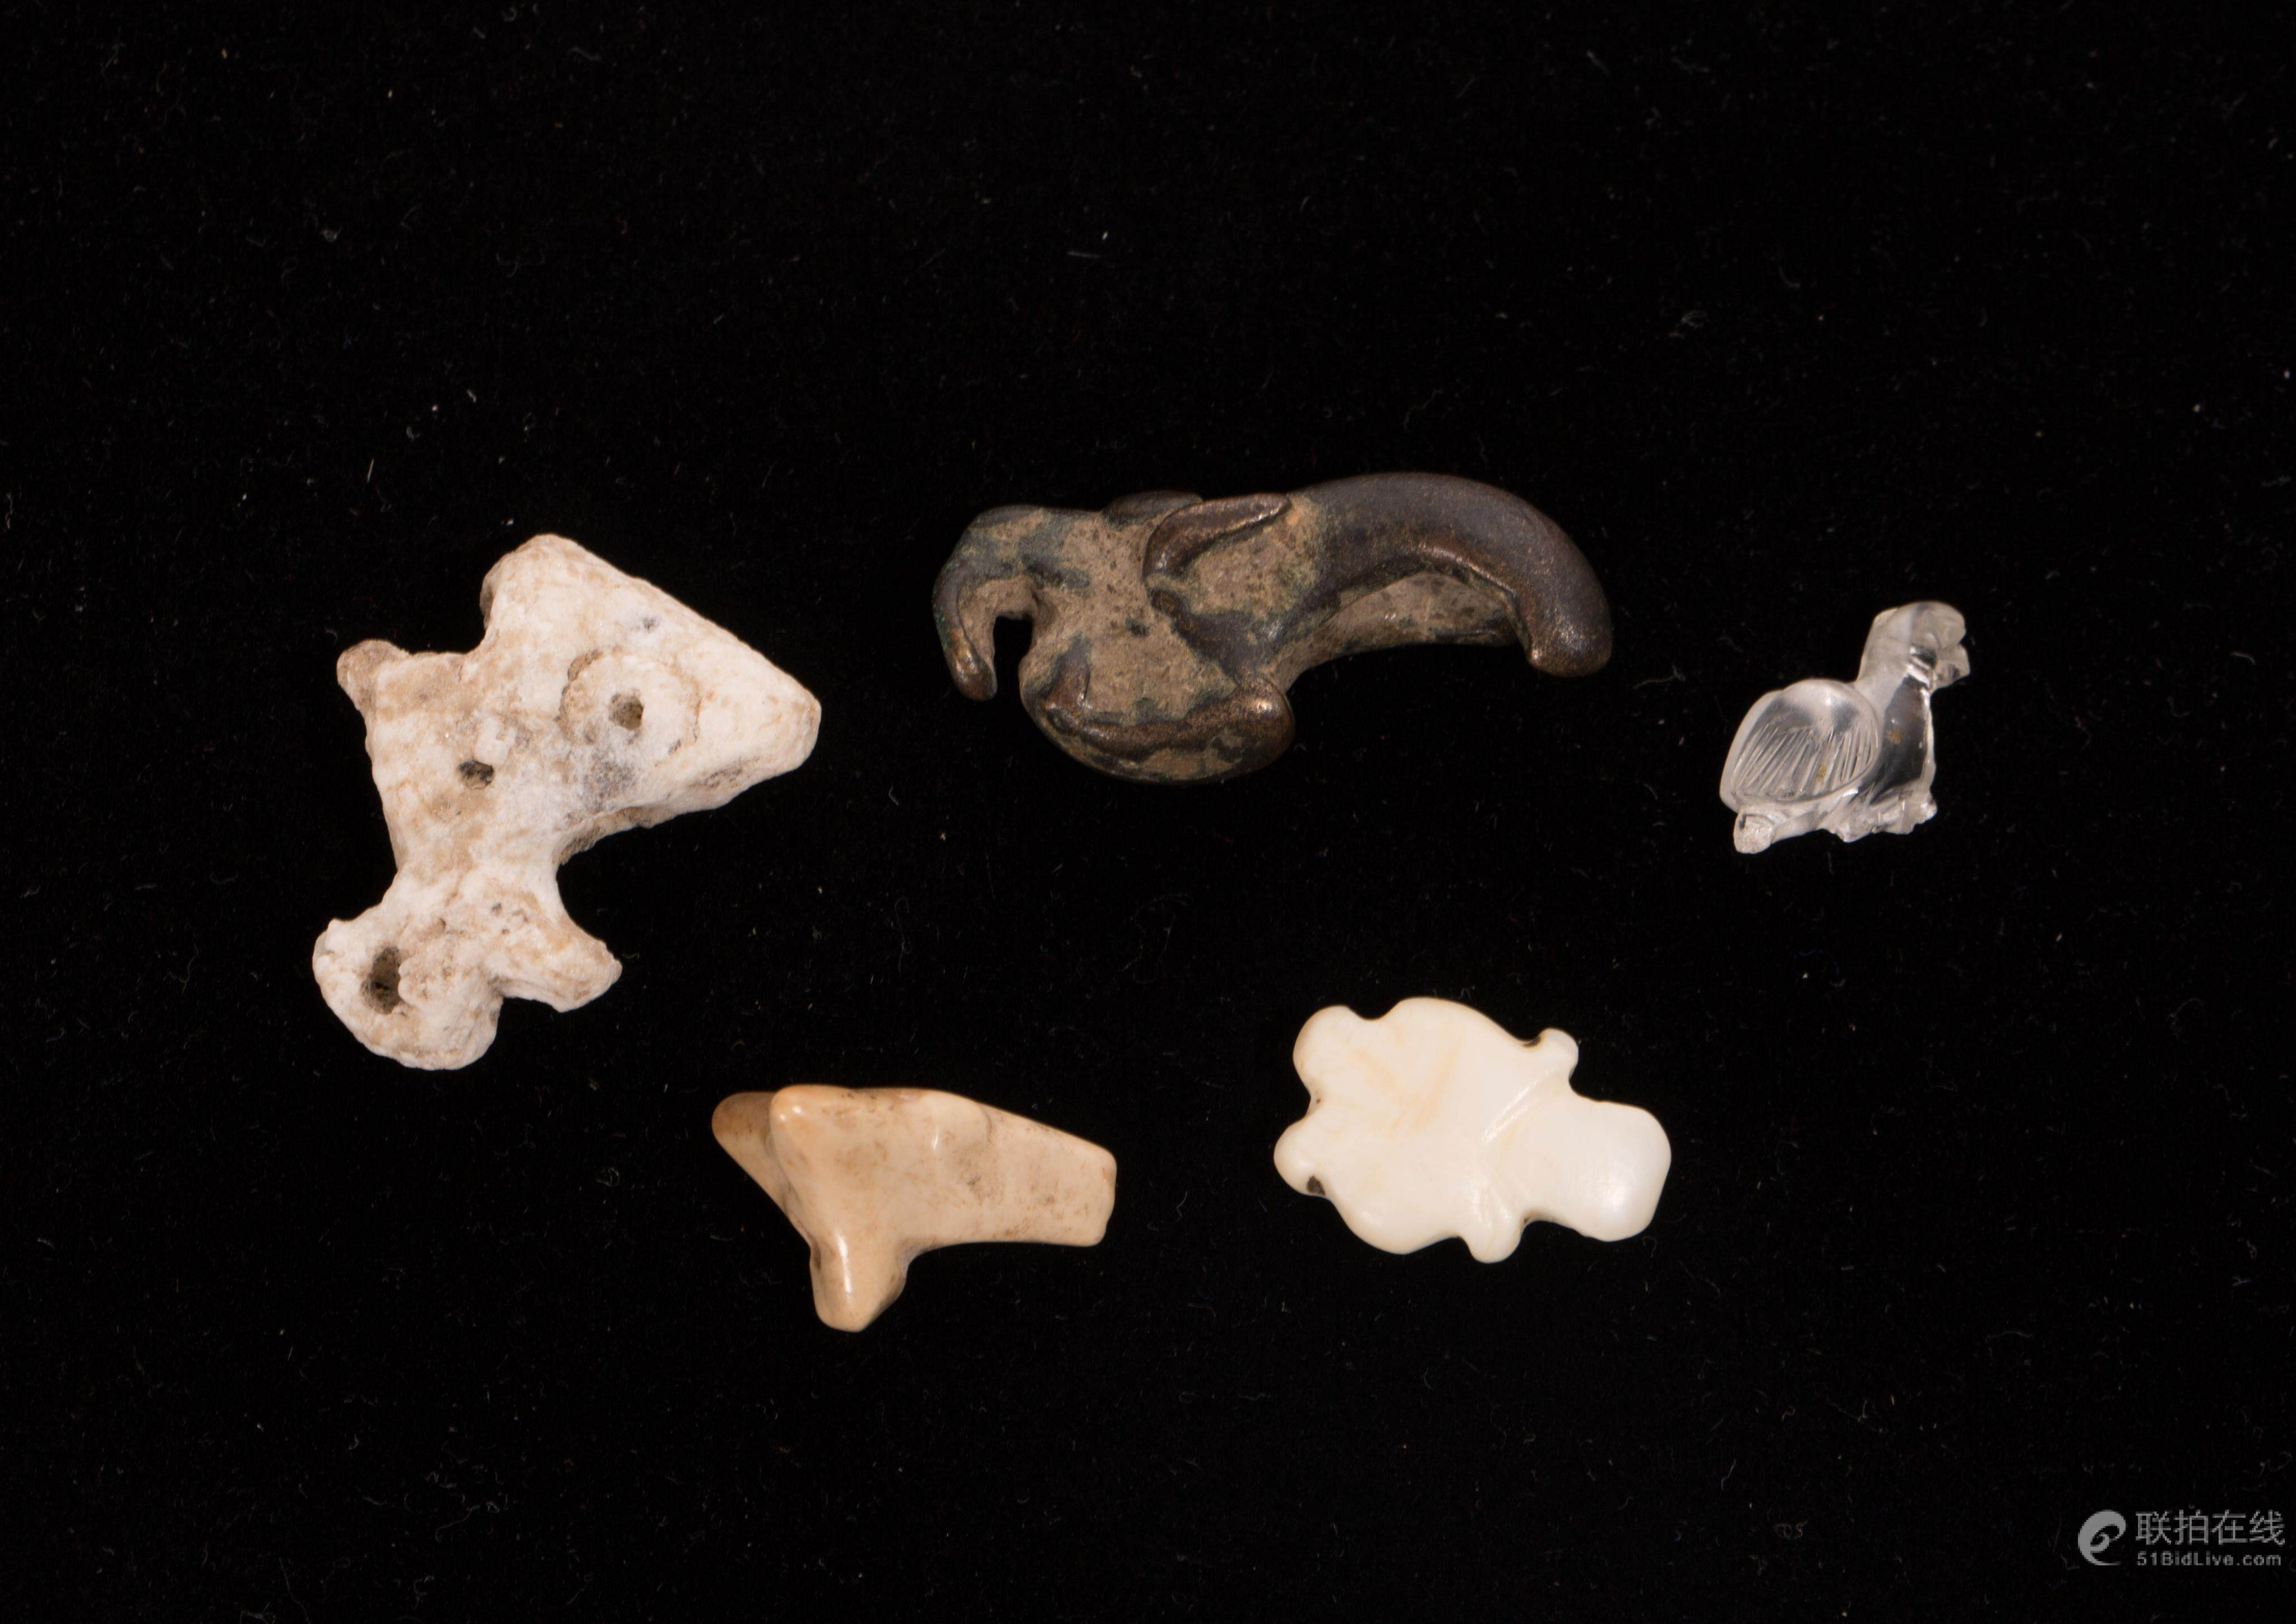 51BidLive-[A NICE LOT OF 5 ANCIENT ANIMAL AMULETS]